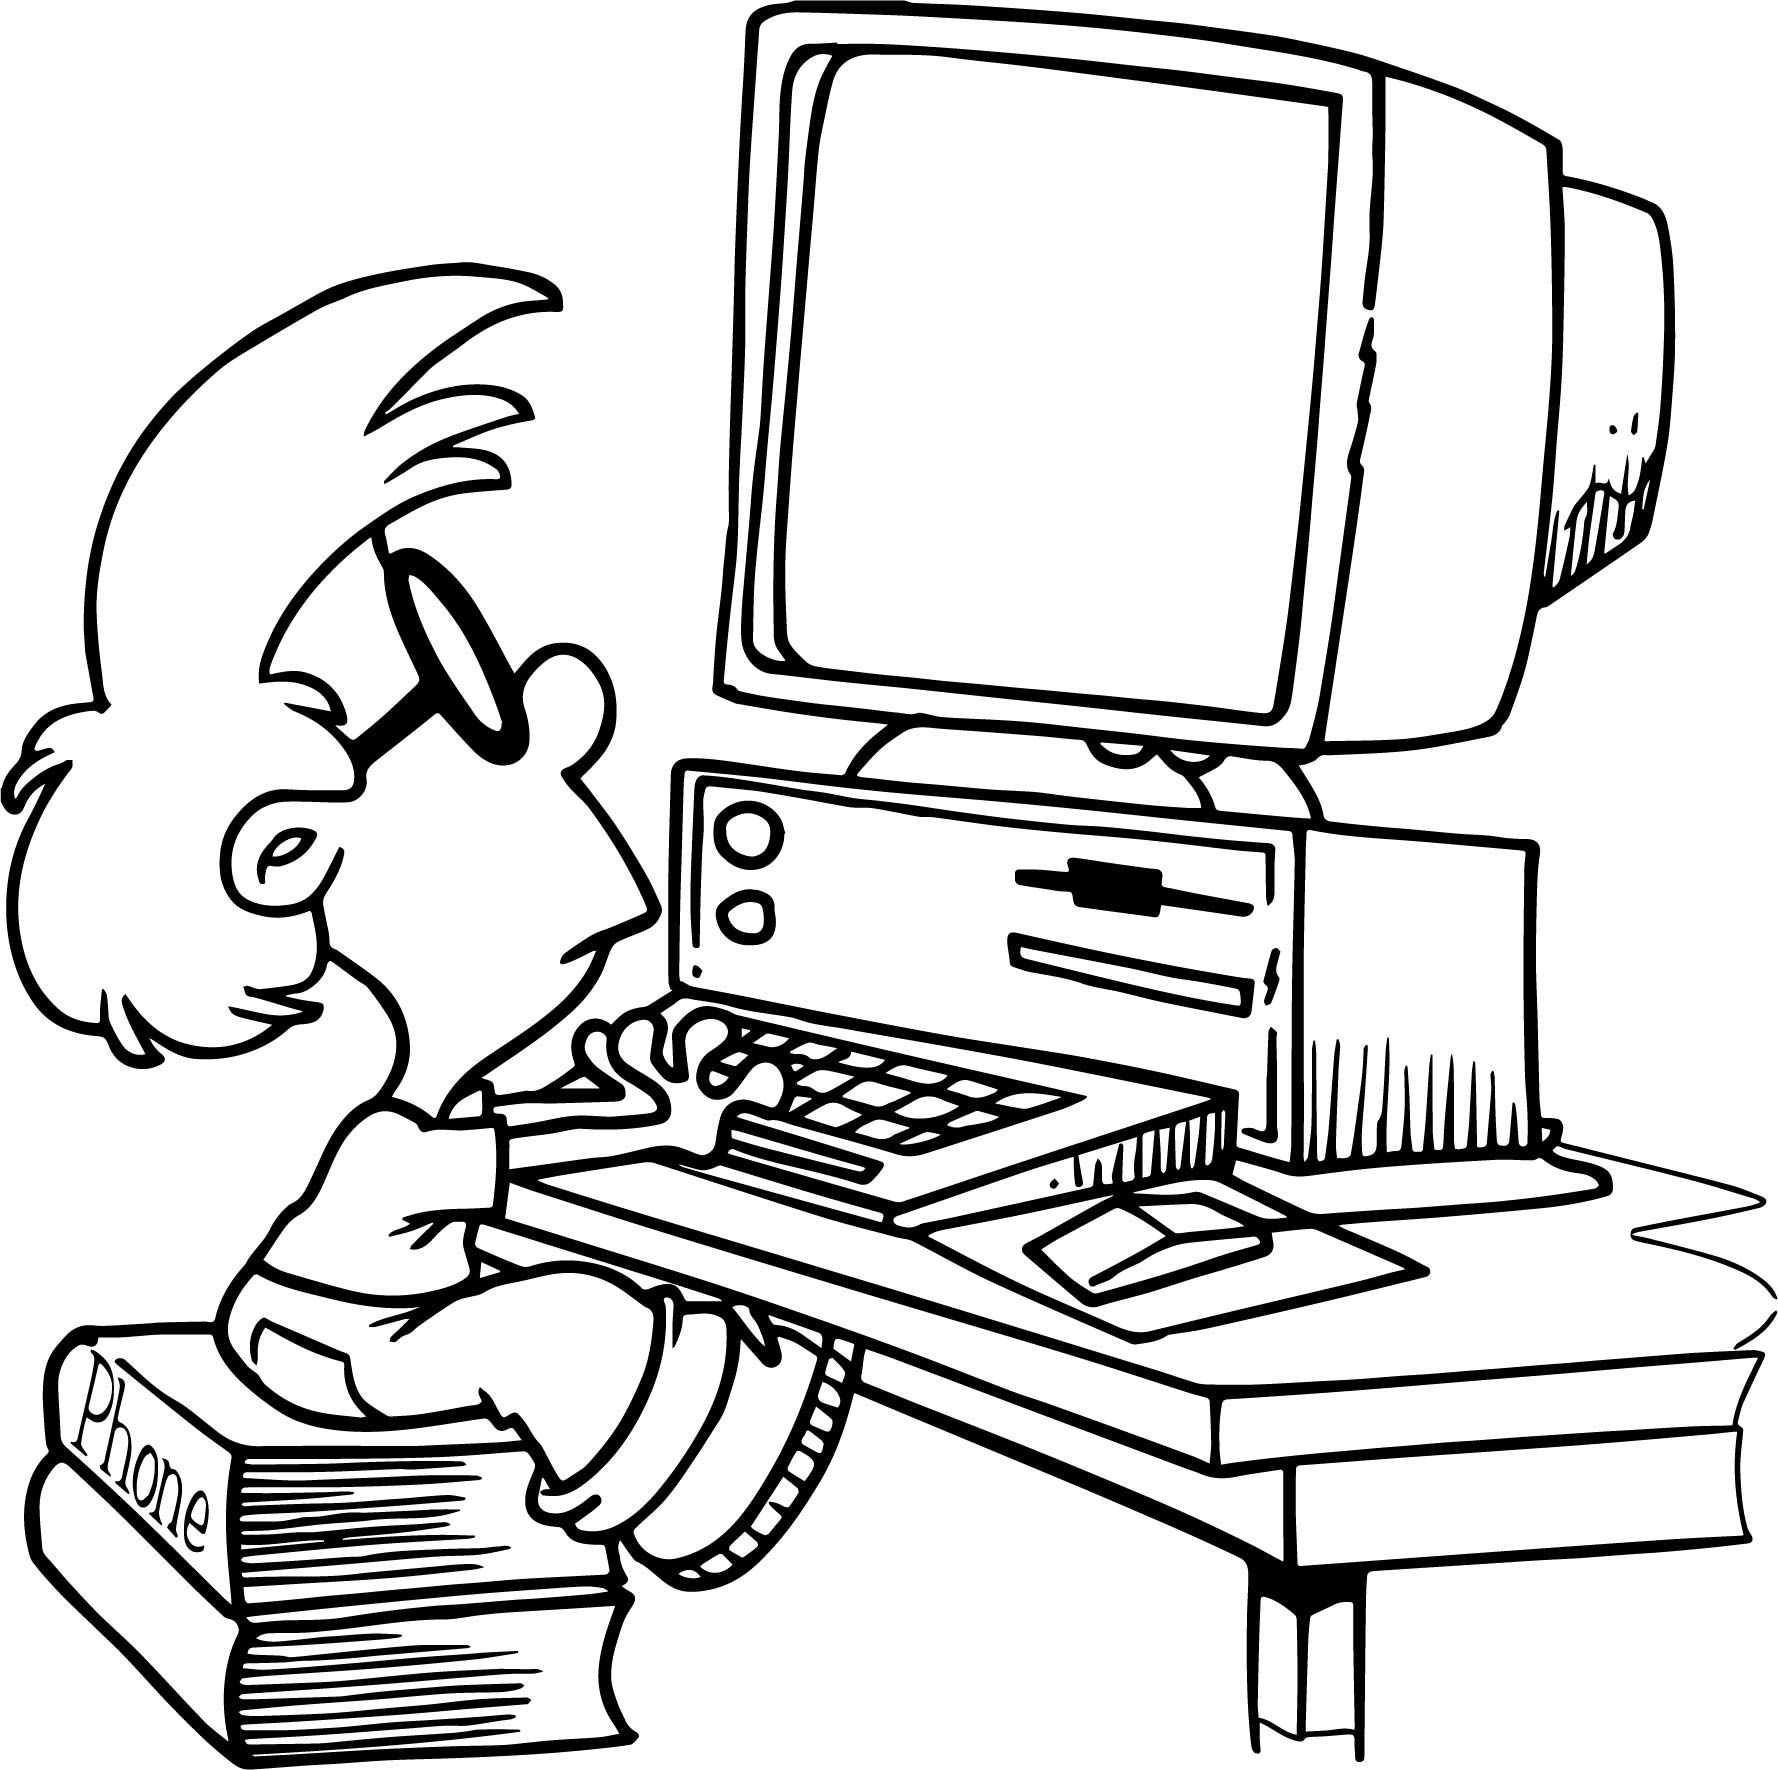 44+ Coloring Sheets Of Computer Free Images